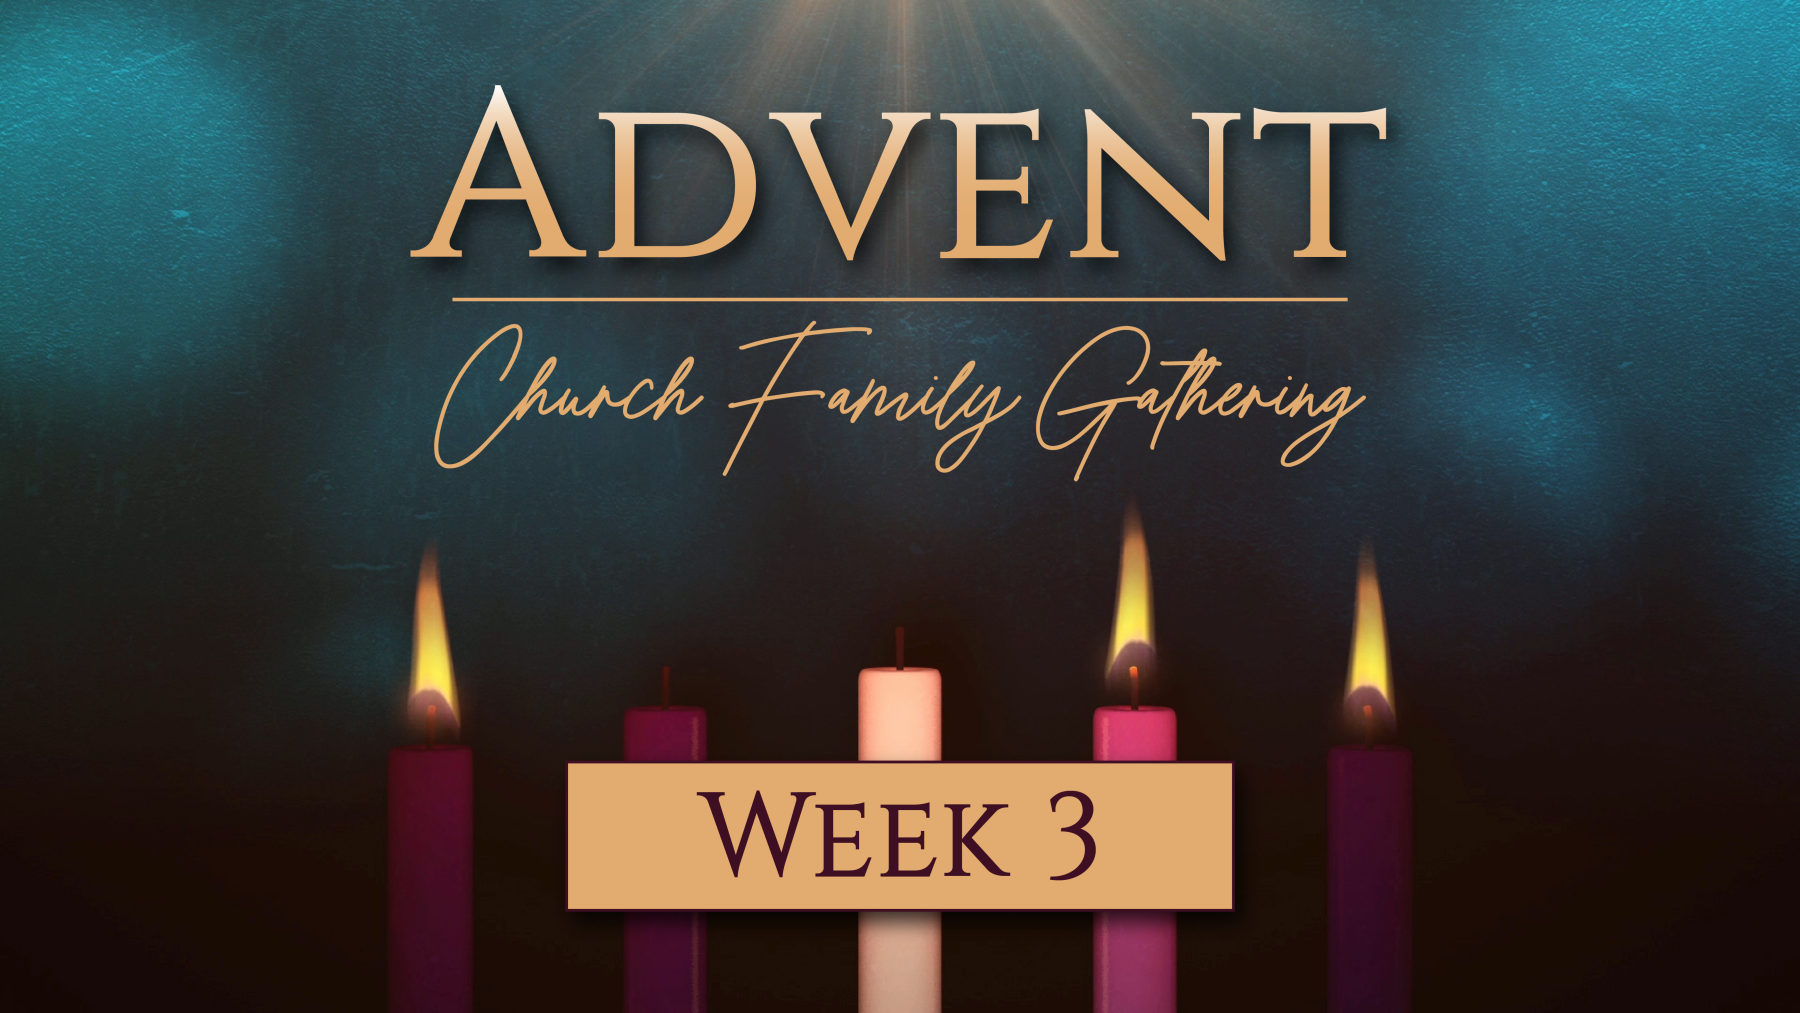 Advent Church Family Gathering